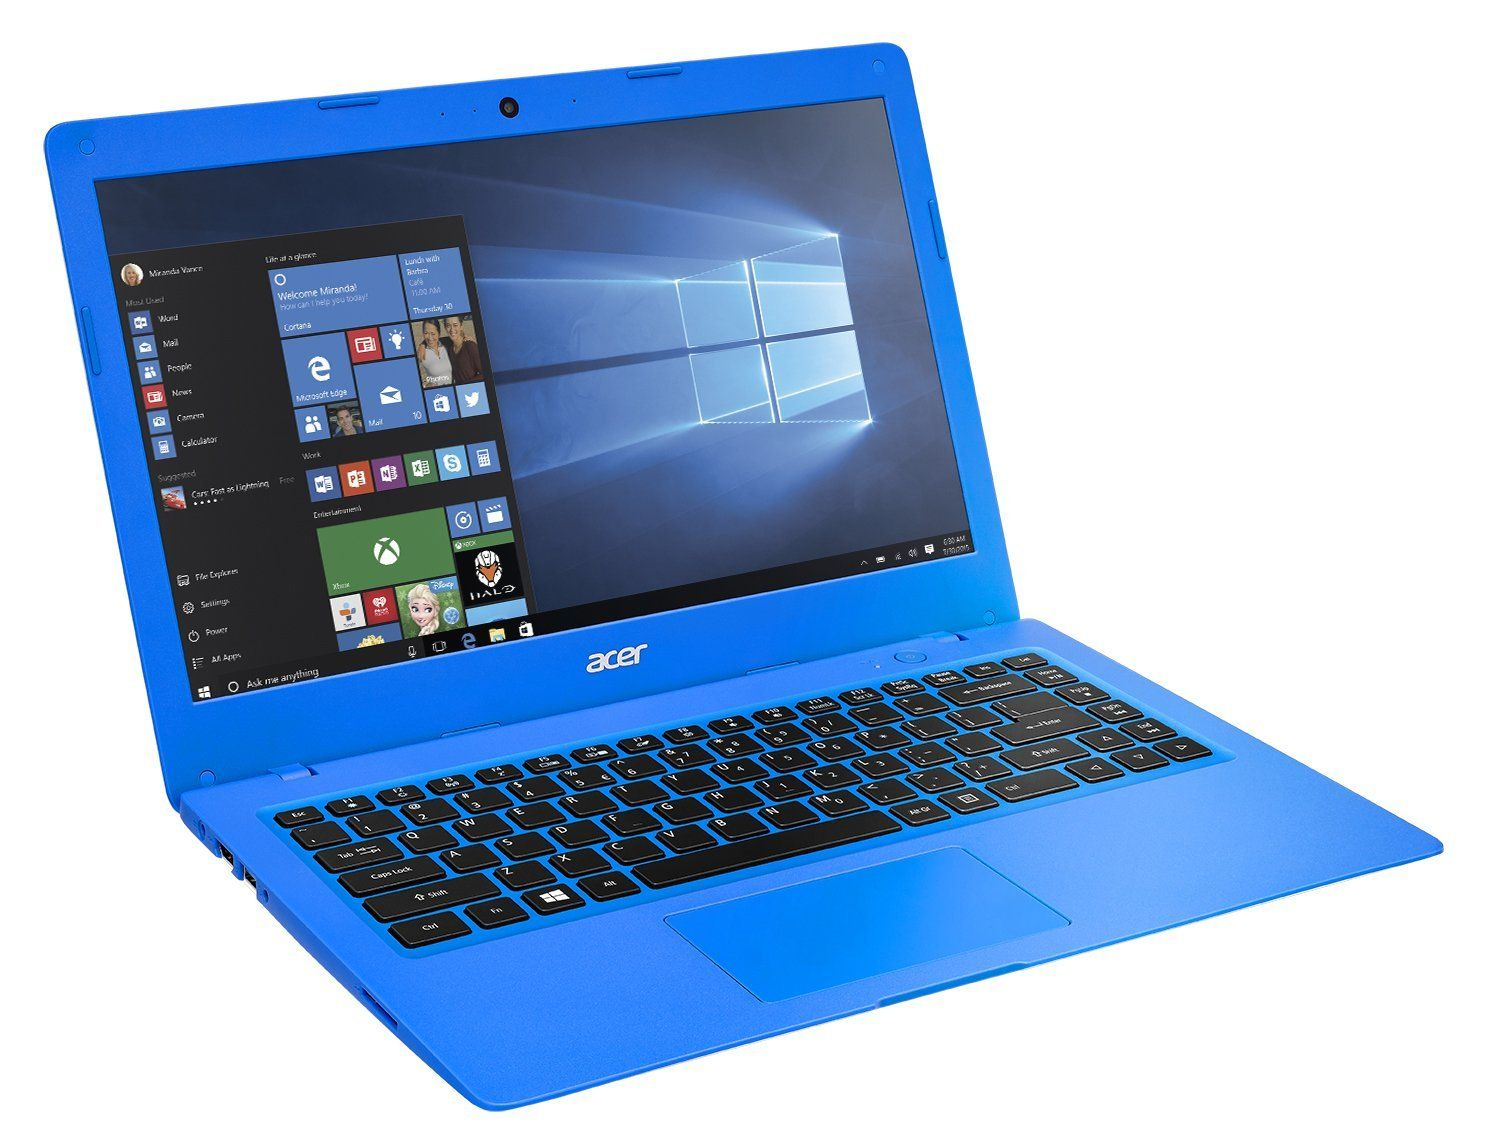 The Best Cheap Laptop Deals In November 2020 Office 365 Personal Acer Aspire One Laptop Cheap